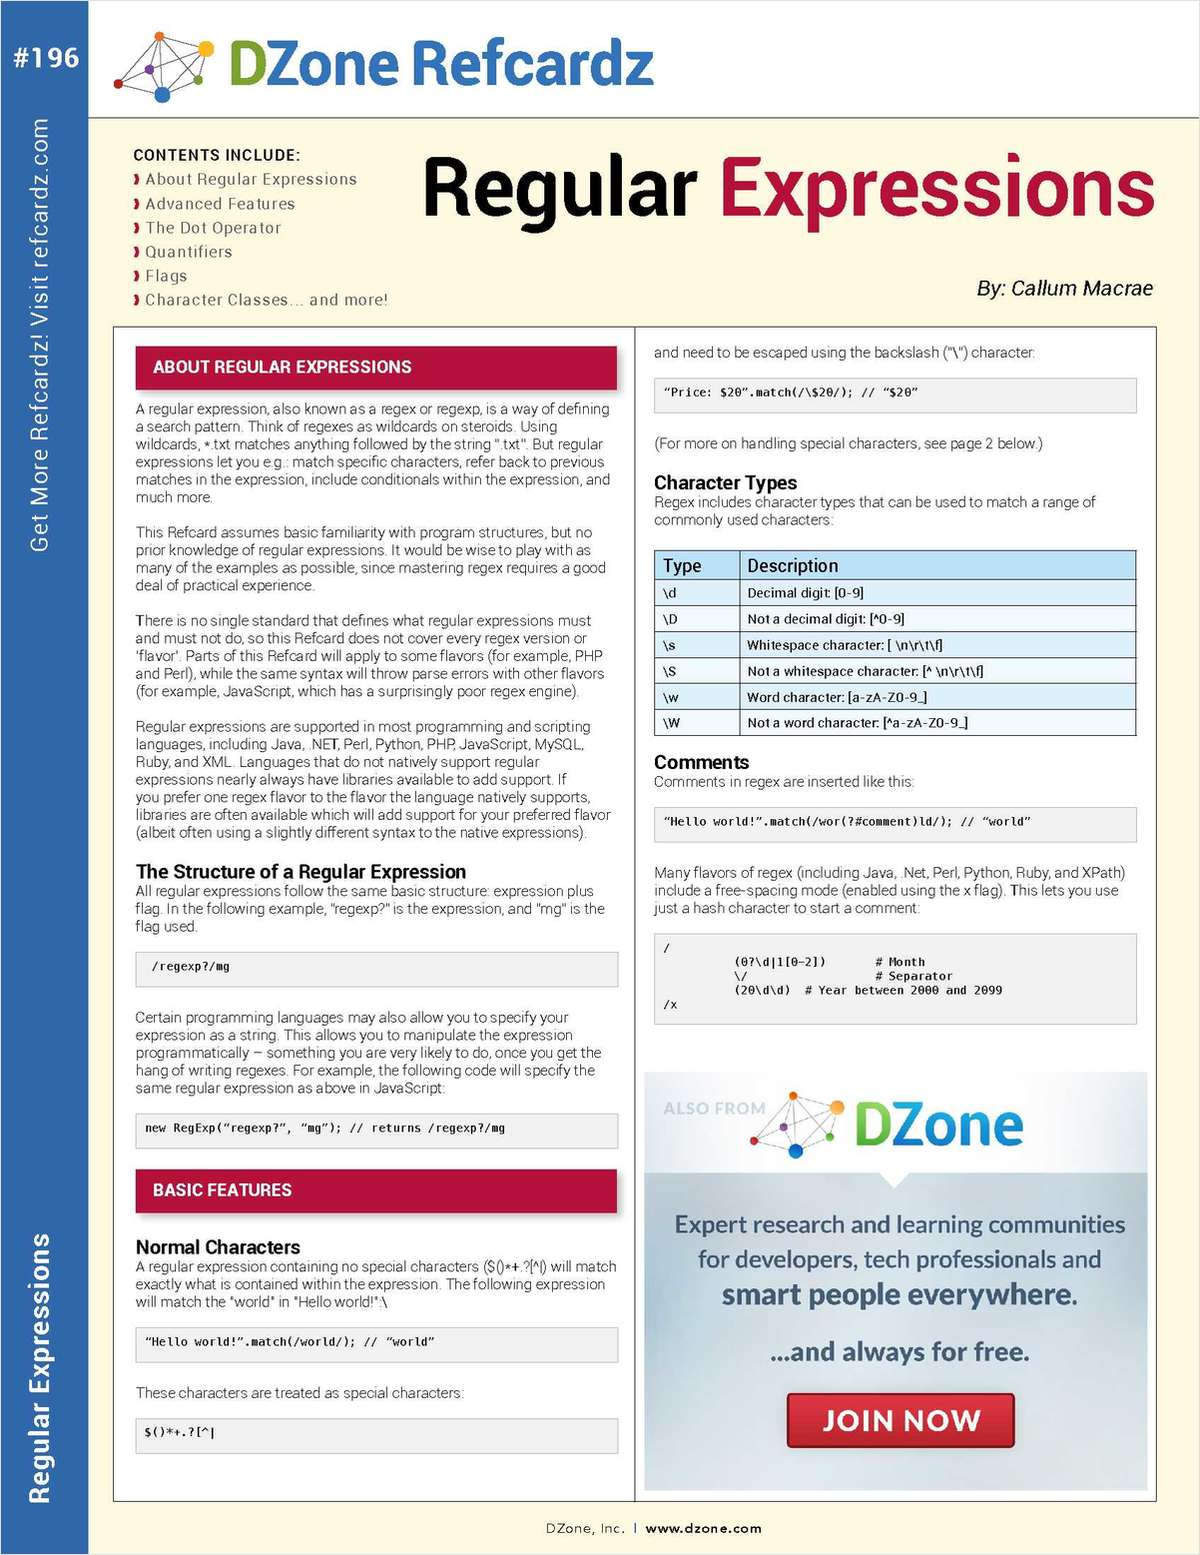 The Essential Regular Expressions Cheat Sheet